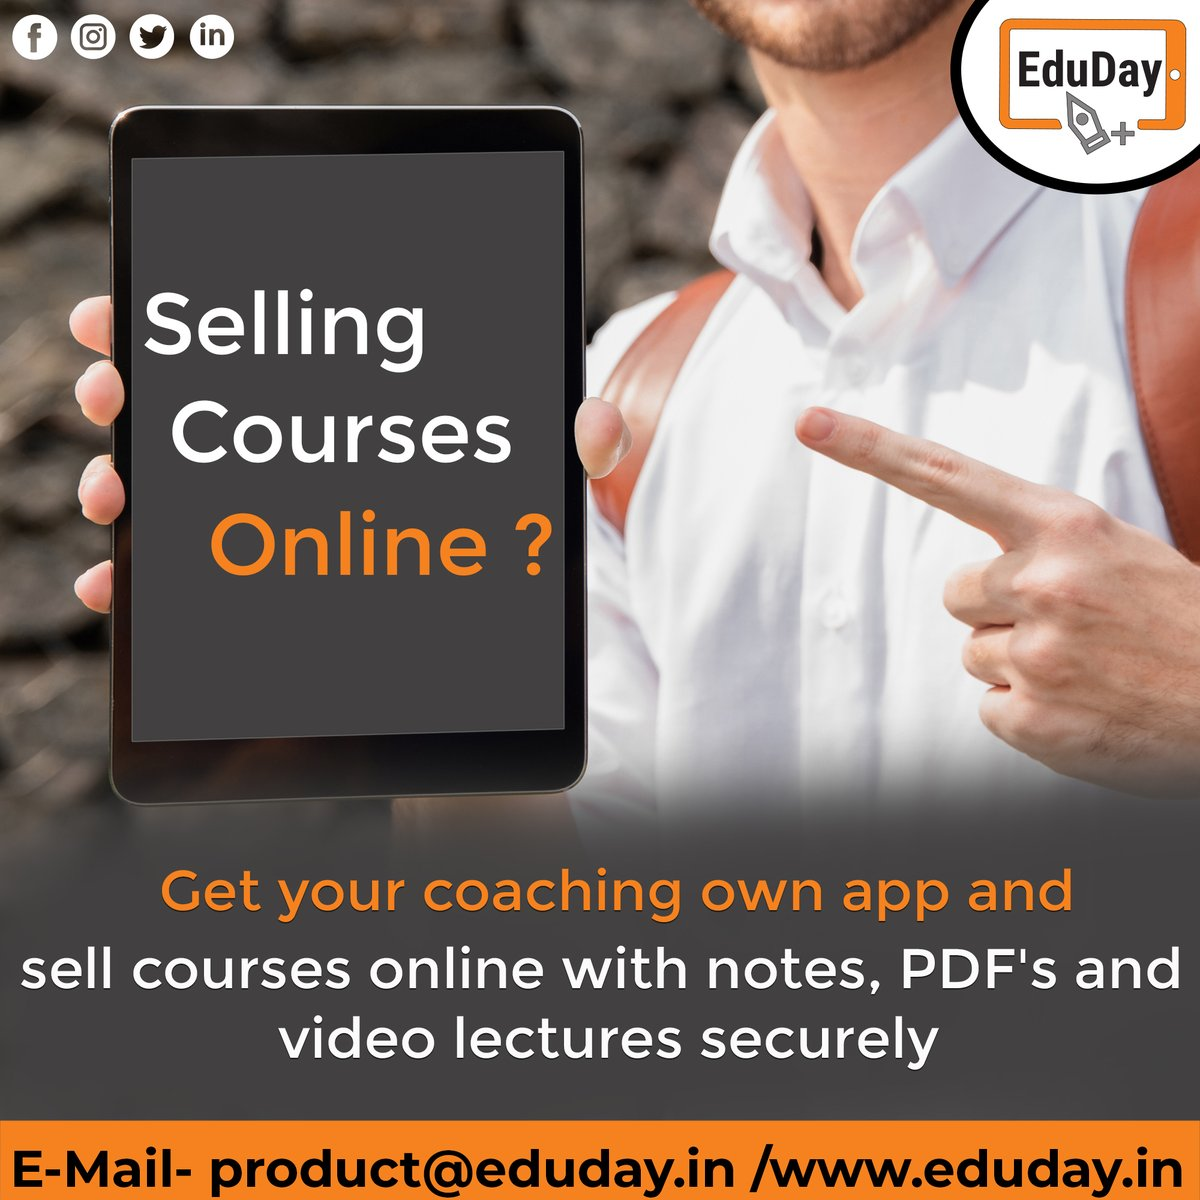 Transform Teaching, Inspire Learning and Deliver a world-class Student Experience.  Get in touch to know more:- Phone : +91 7447712085 E-Mail: product@eduday.in visit:- http://www.eduday.in   #eduday #edudayindia #pune #india #tab #tablets #CoachingInstitute #Coachingclassesspic.twitter.com/Qgc6S3TSvV